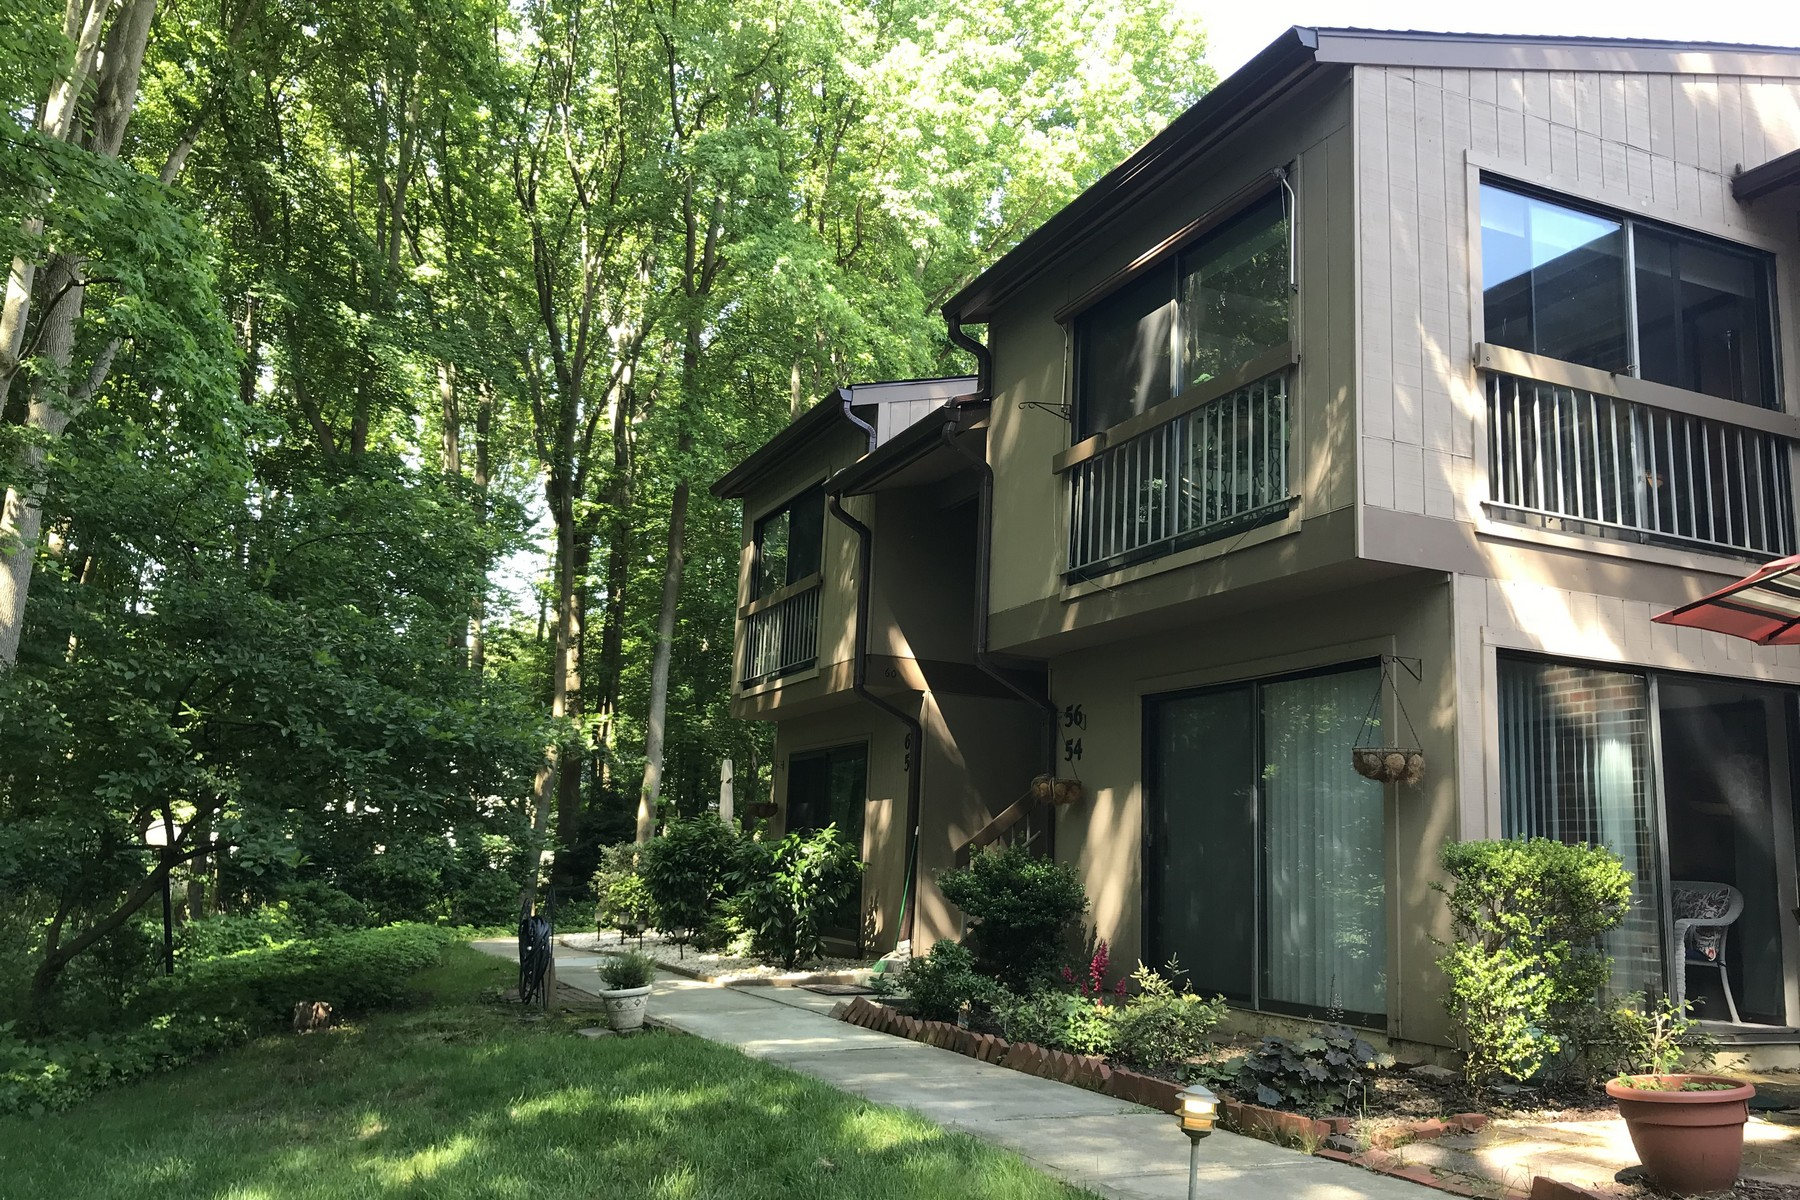 Condominium for Sale at Nature Lovers 56 Manchester Ct, Red Bank, New Jersey 07701 United States